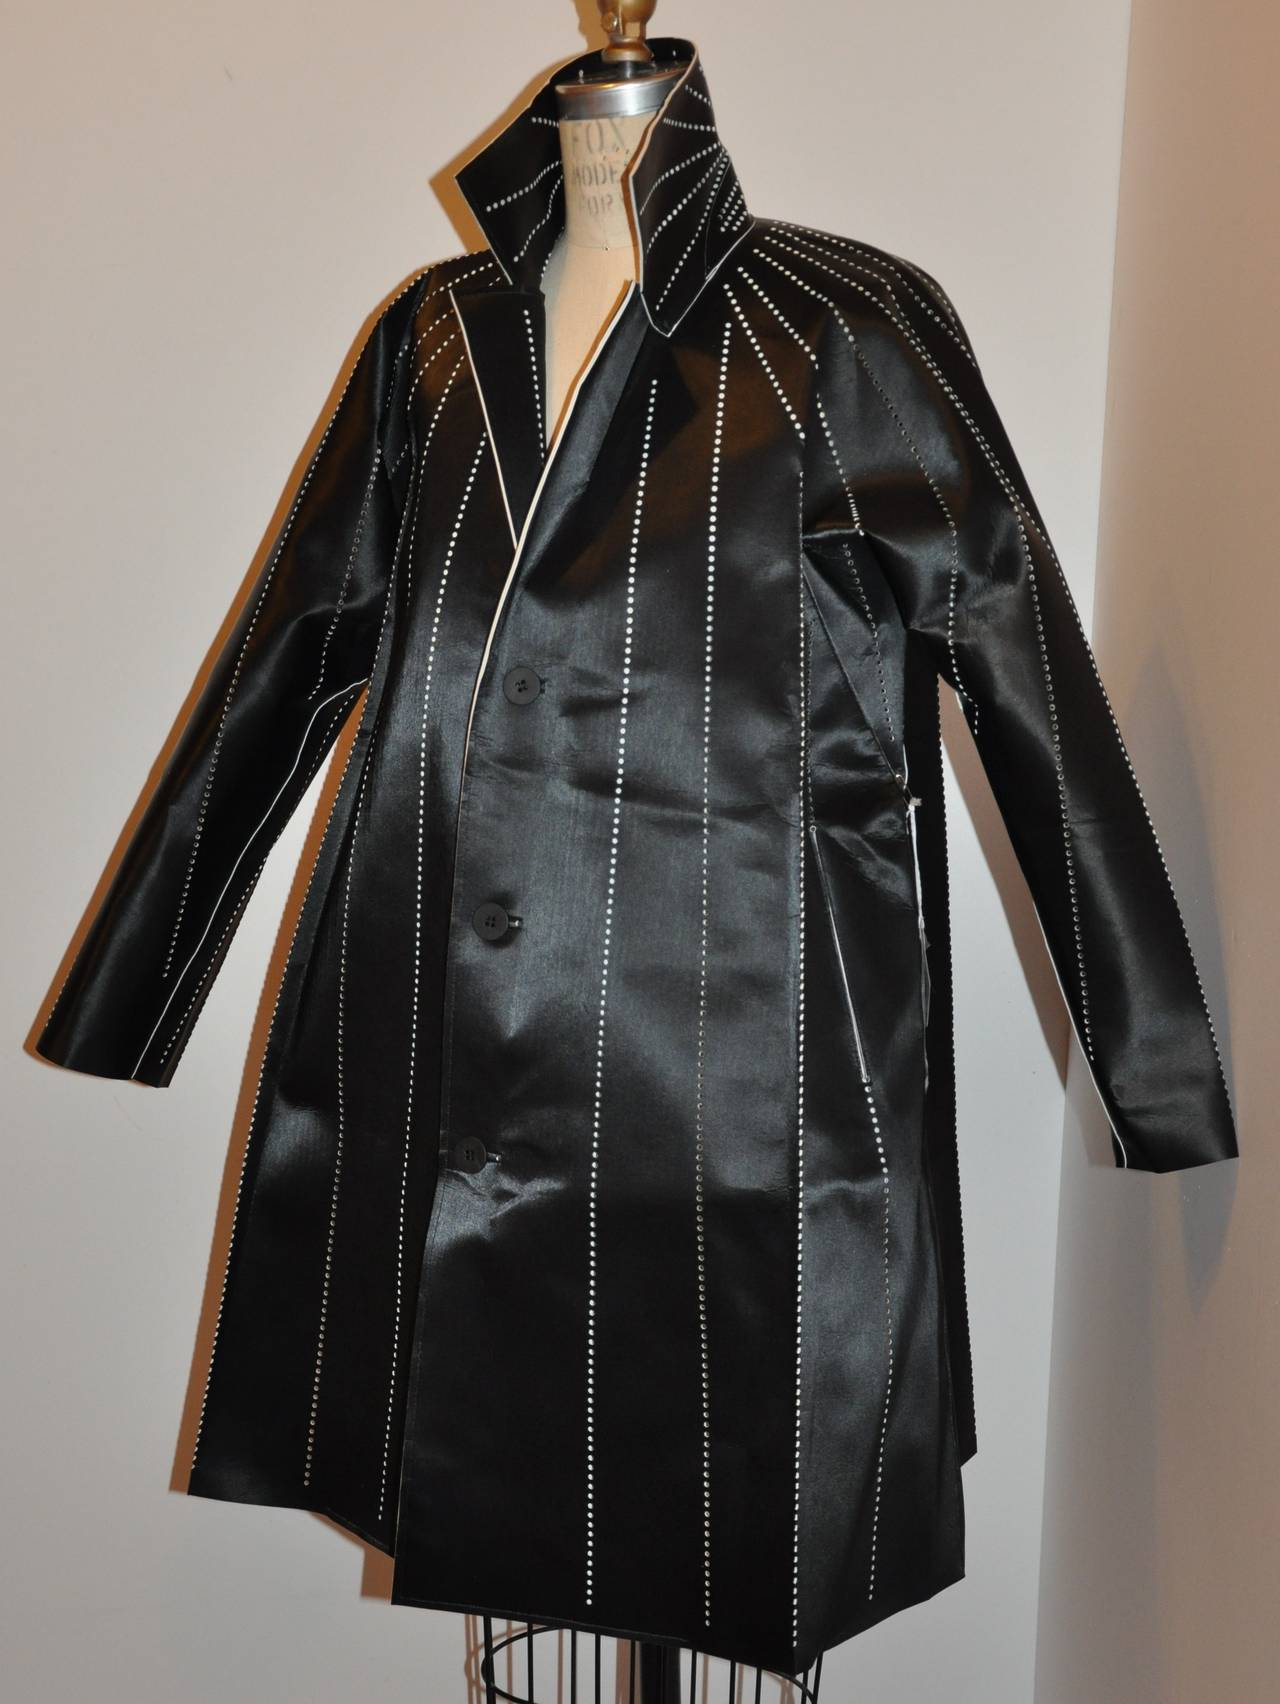 """Issey Miyake Whimsical dark navy stencil flared jacket measures 35 1/2"""" in total length. Underarm circumference measures 43"""", collar stands at 4"""" in width, sleeves are 27"""", cuff circumference is 10 1/2"""". The hem's circumference measures 66"""". The"""